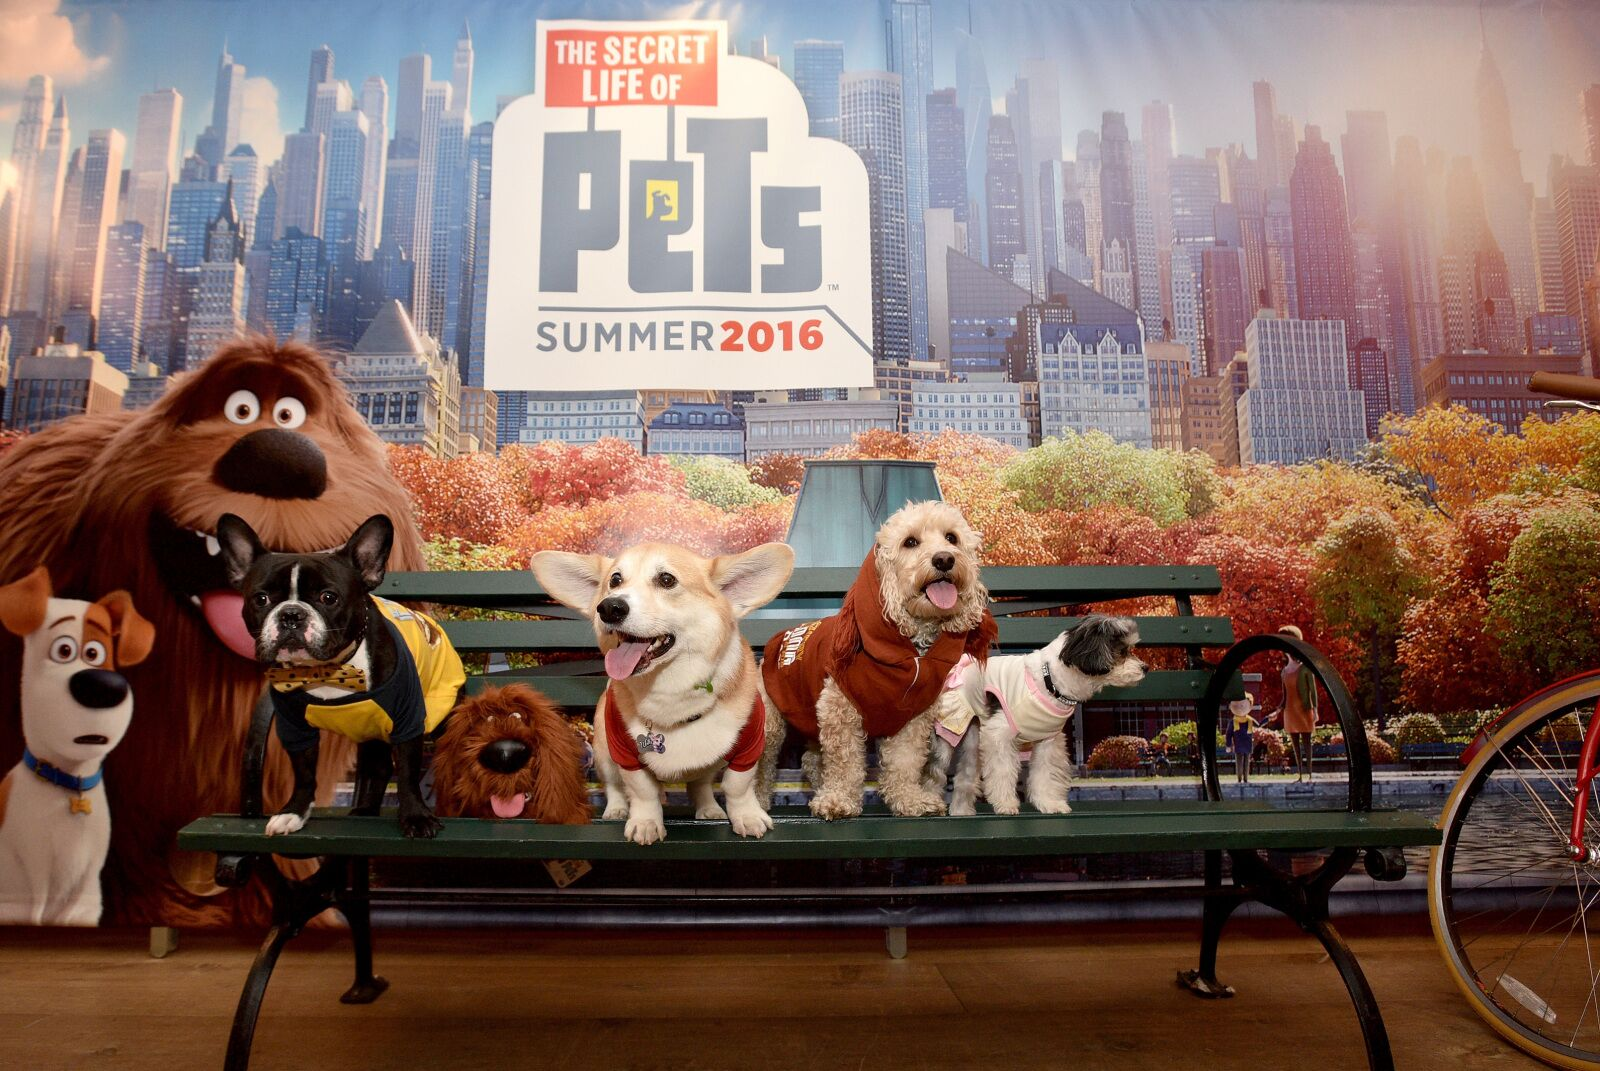 Secret Life of Pets 2 reveals the truth about those puppy accidents